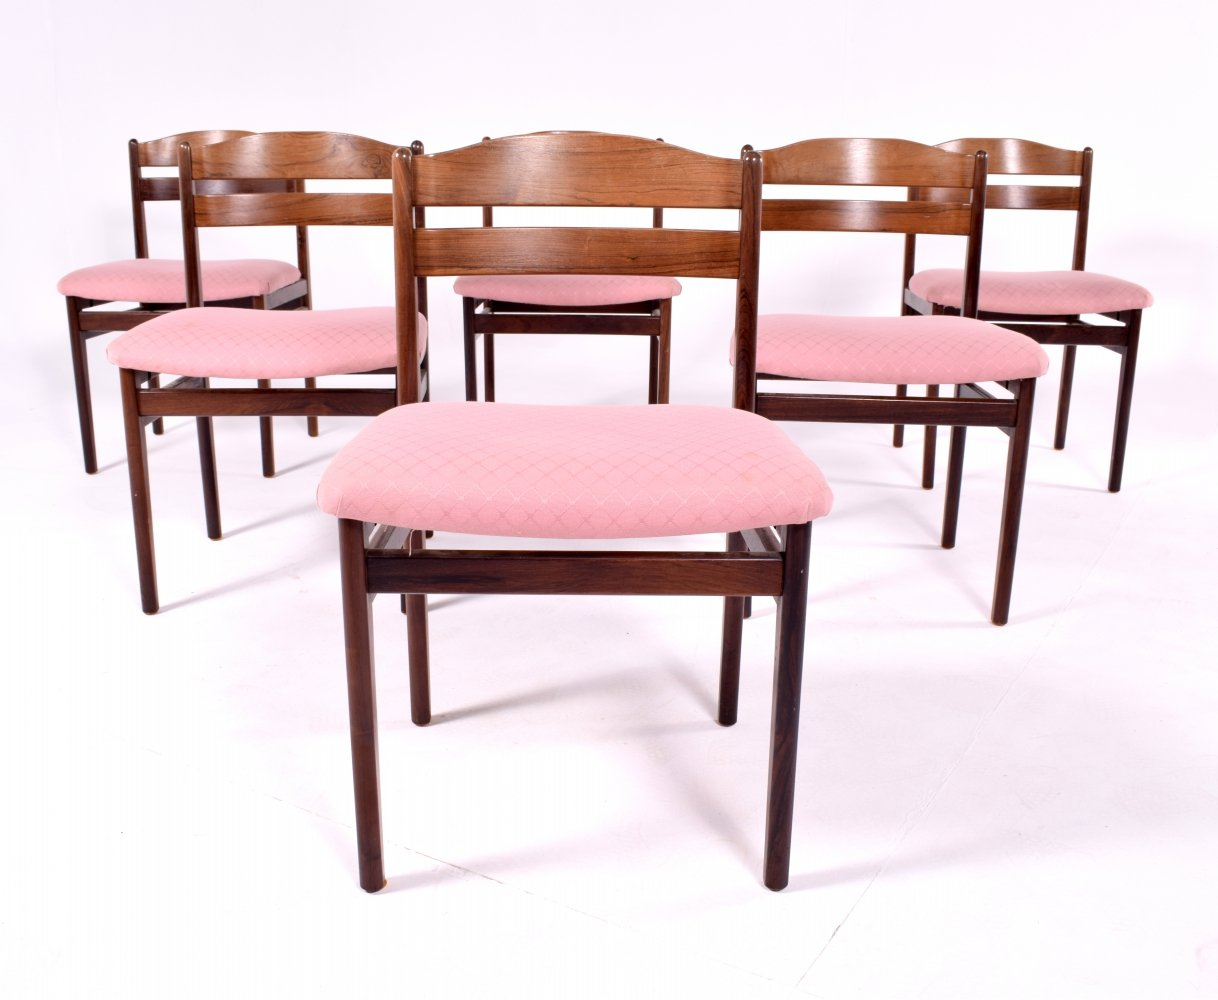 Set of 6 Mid Century Rosewood chairs, Denmark 1960s